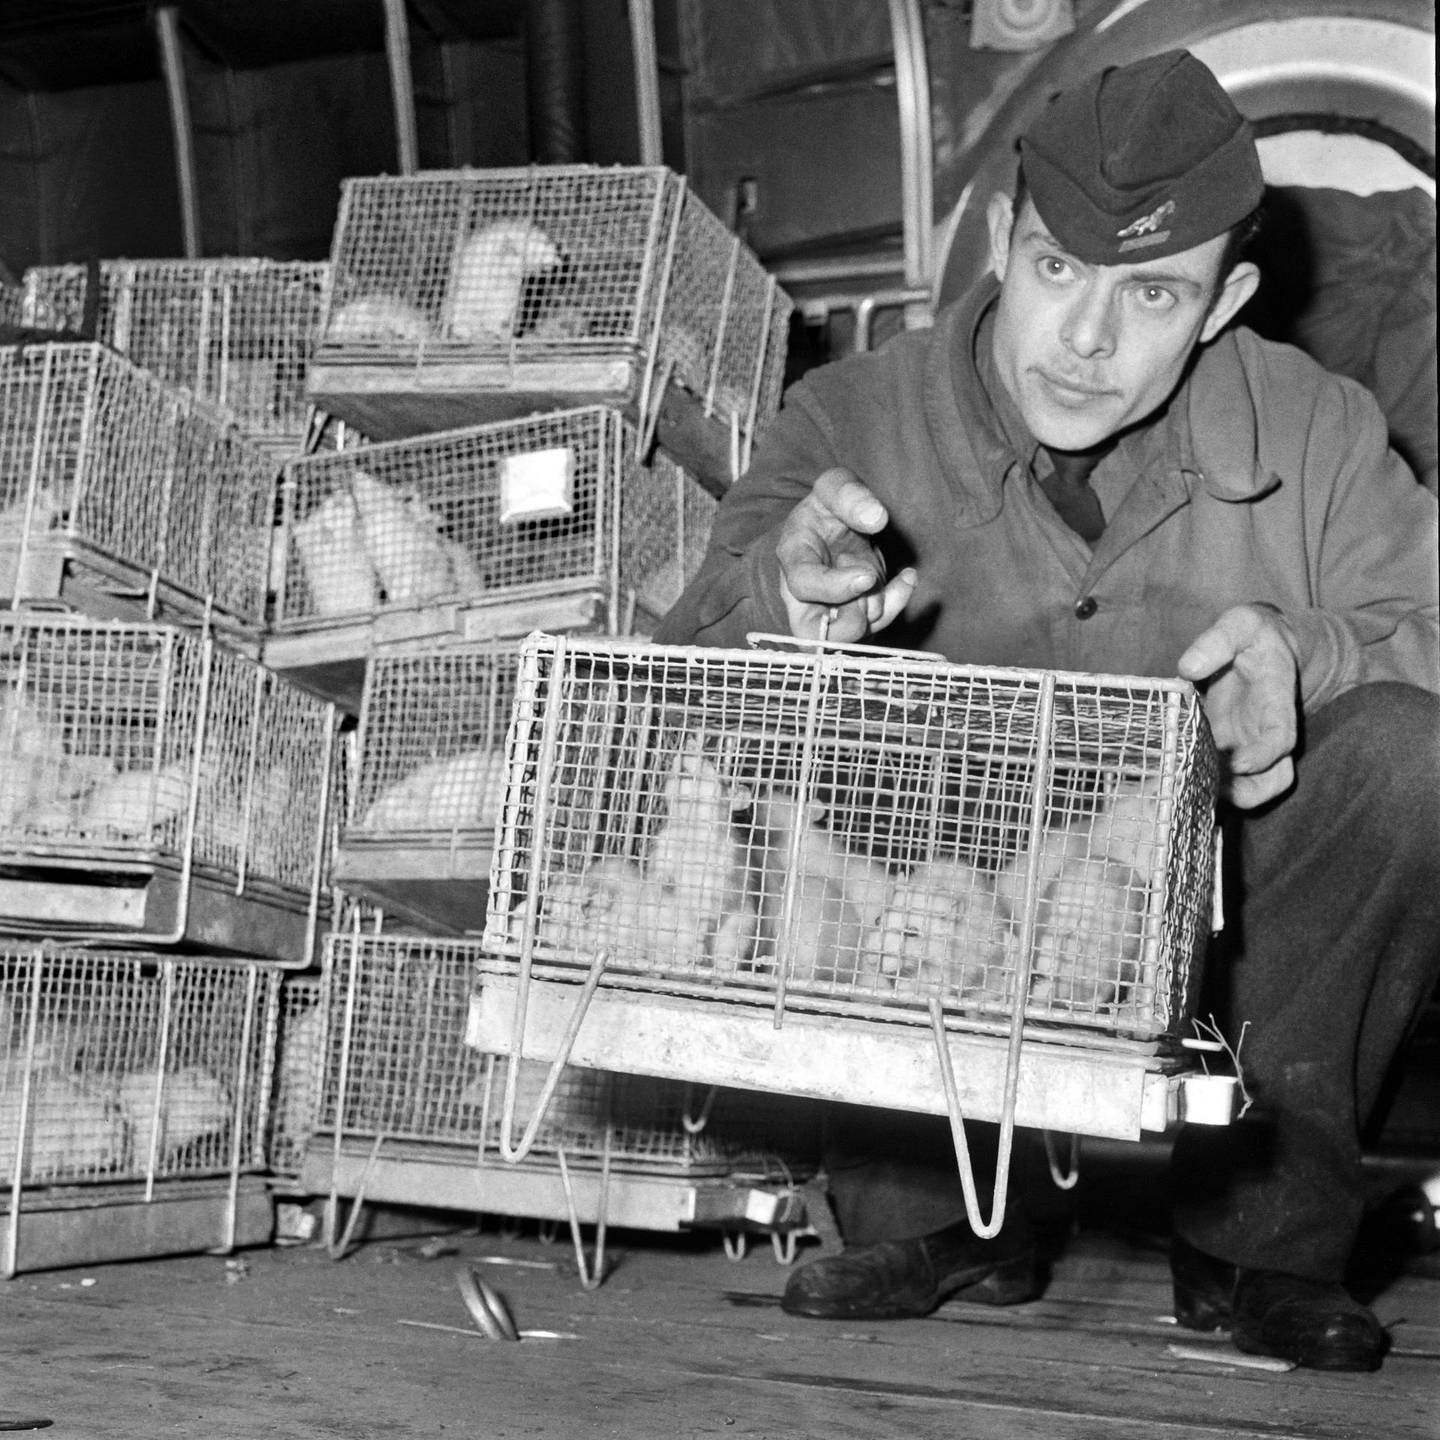 A picture taken on December 29, 1960 at Le Bourget Paris airport show a soldier holding cages of guinea pigs arriving from Reggane, southern Sahara desert, after they were exposed to the radiations of the third French nuclear test carried out in 1960, in order to establish medical treatments to fight the effects of nuclear blasts. Reggane was the site where the first French nuclear bomb was tested on February 13,1960 before the Algerian independence. France used soldiers as guinea pigs in nuclear tests in the 1960s, deliberately exposing them to radiation from atomic blasts to test the effects, according to a secret military report, obtained by AFP, revealed on February 16, 2010.  AFP PHOTO FILES (Photo by - / AFP)